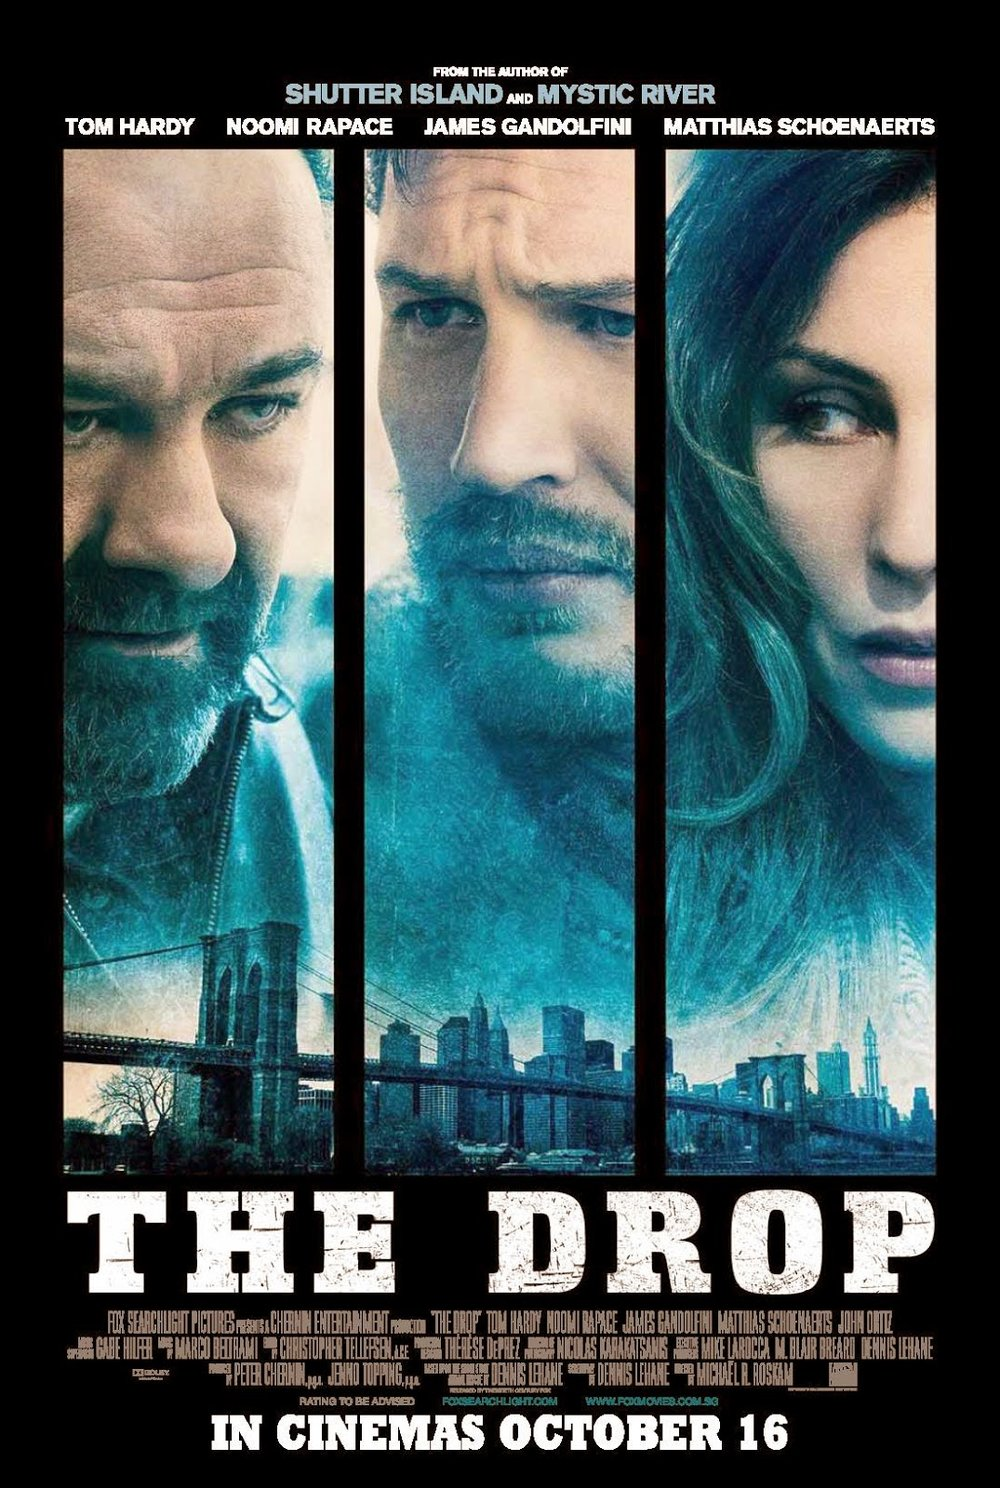 the-drop-movie-international-poster-2.jpg